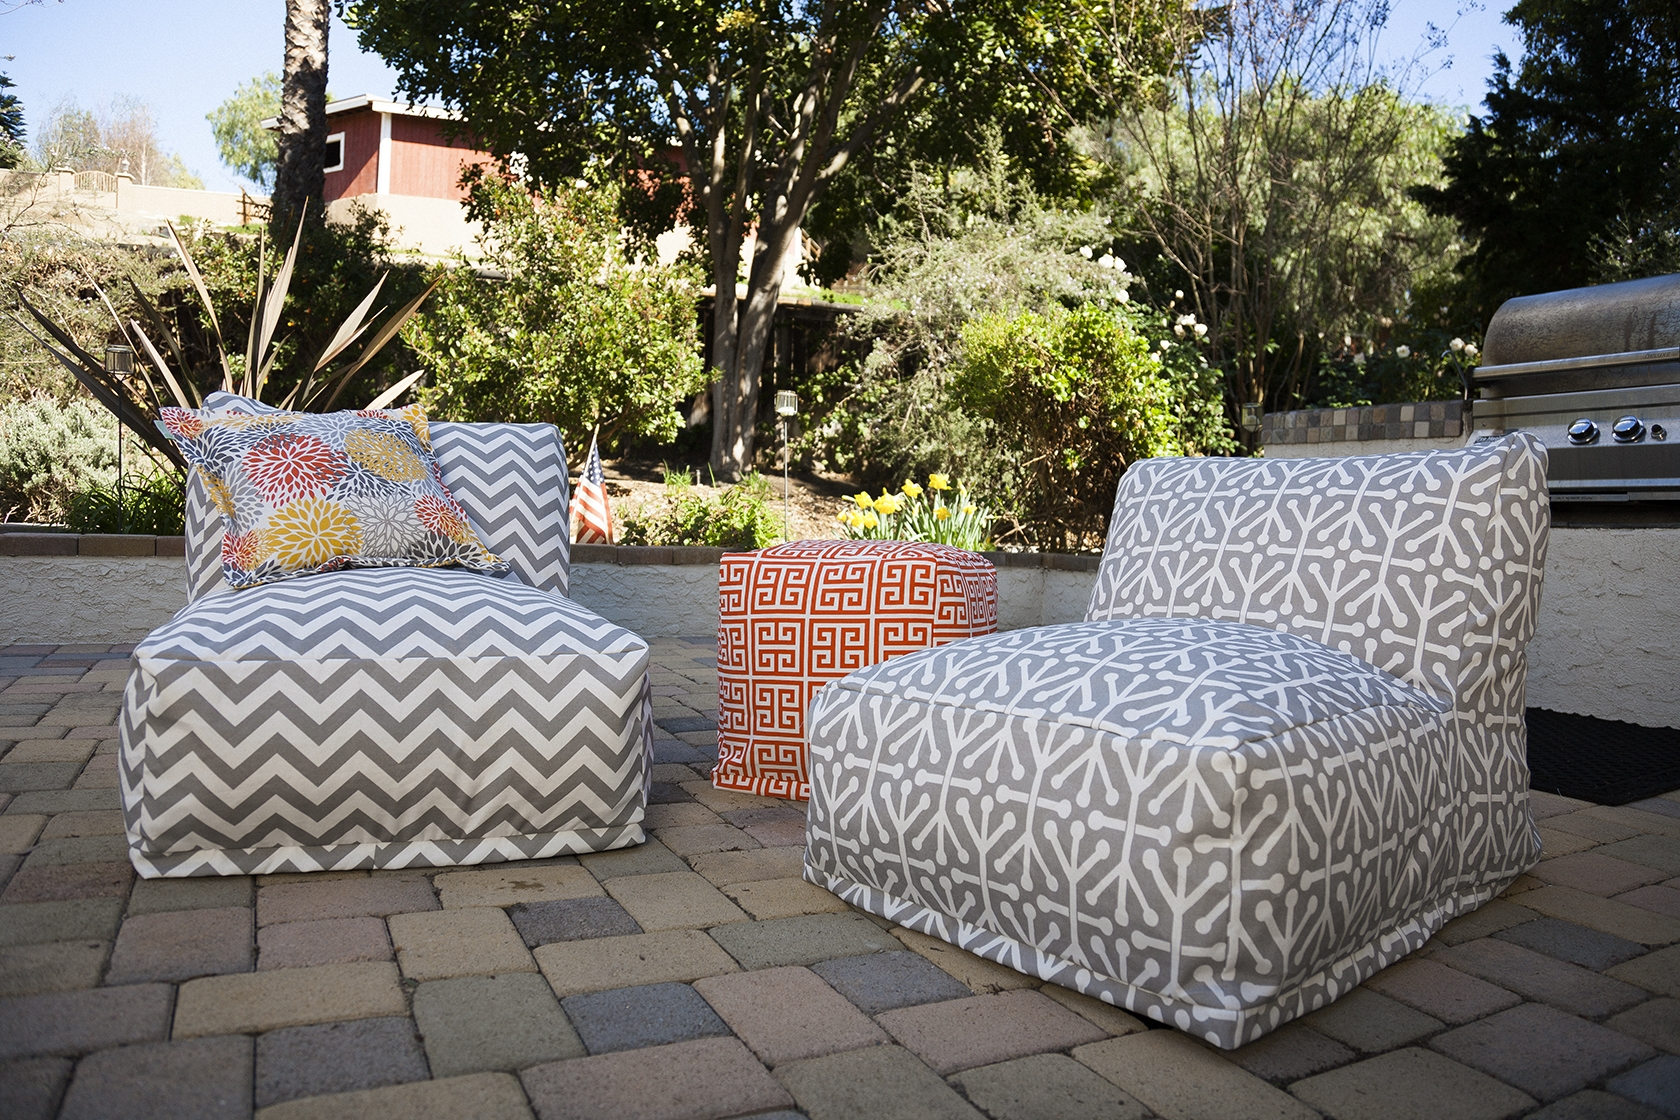 Charmant How To Get The Most Of Outdoor Bean Bag Chairs For Adults